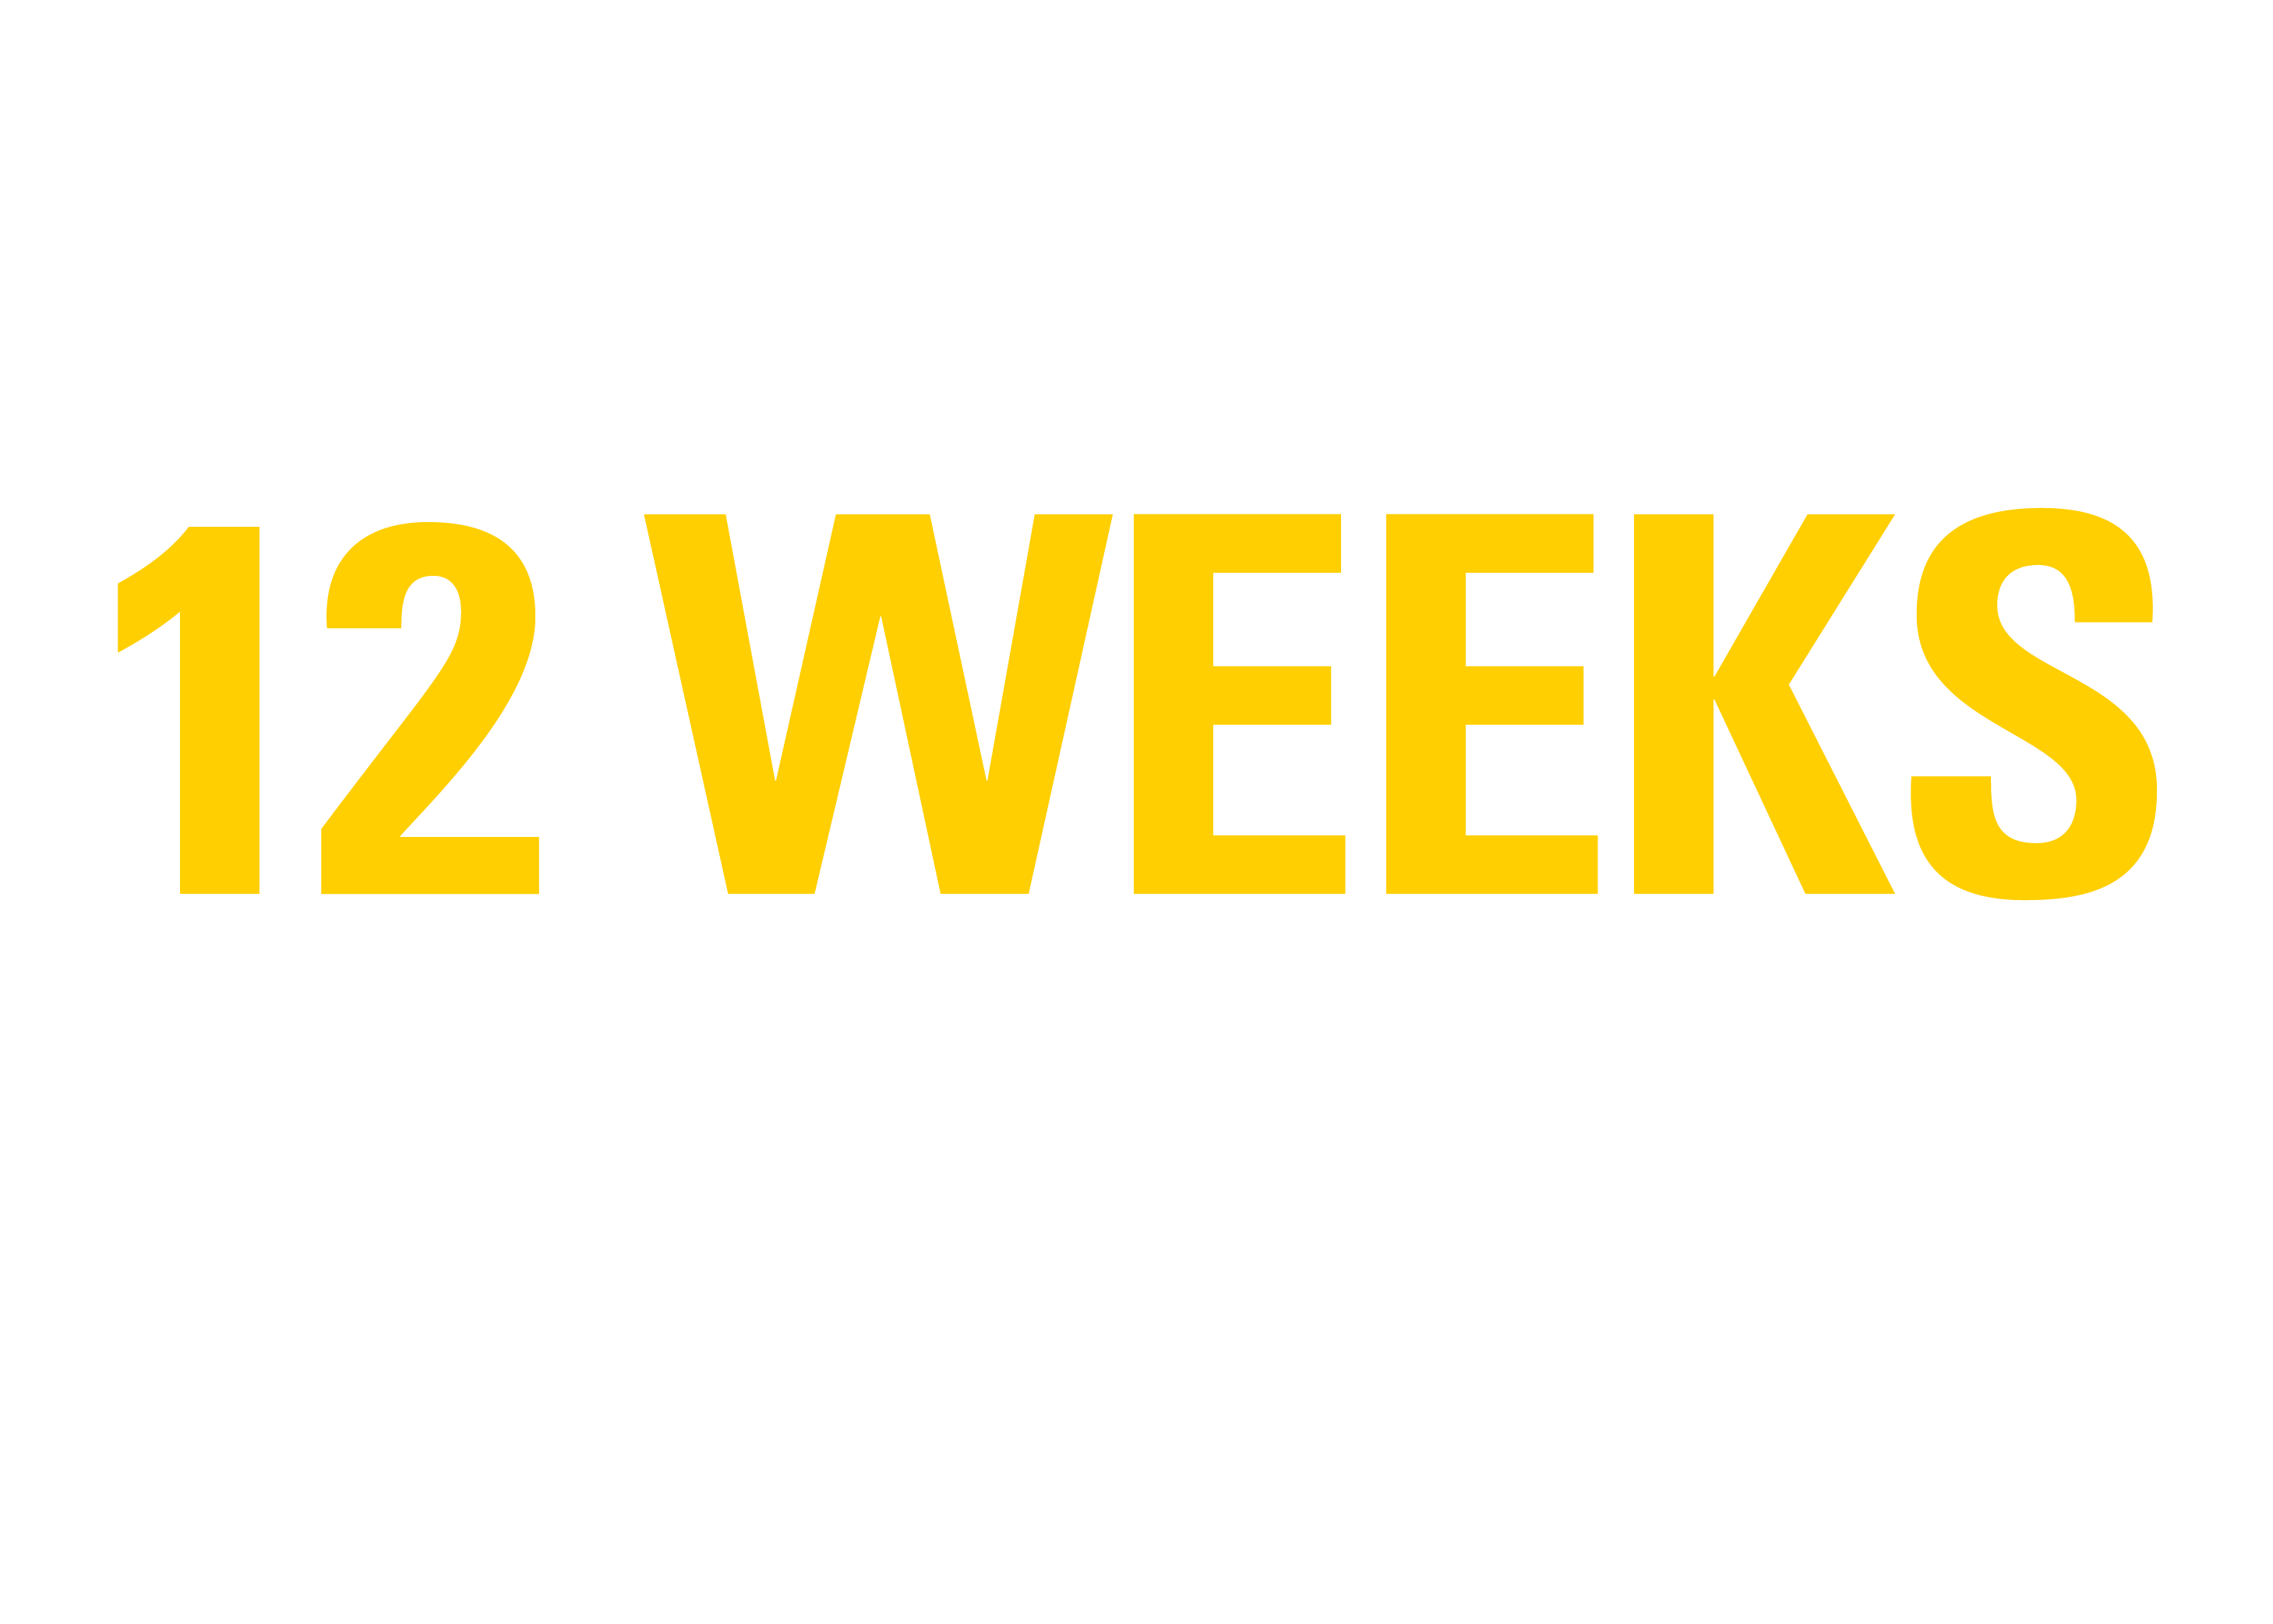 DDS Students Spend 12 Weeks in Community Outreach Program